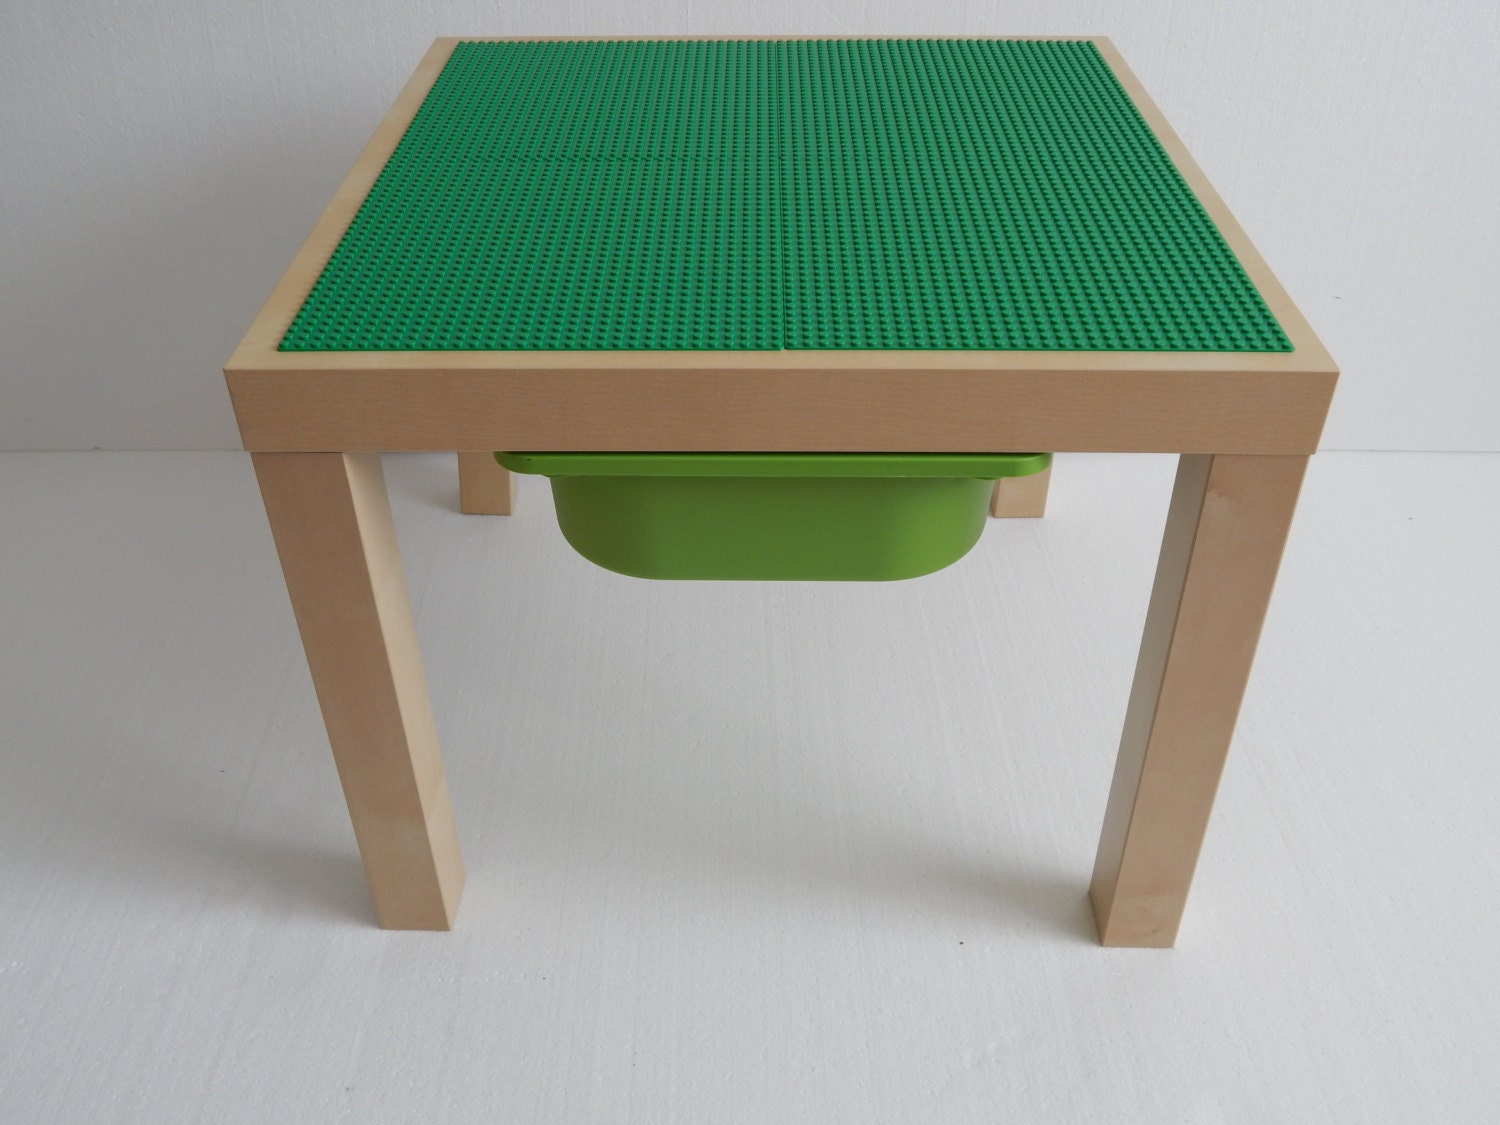 kids lego table with storage large 20x20 green. Black Bedroom Furniture Sets. Home Design Ideas